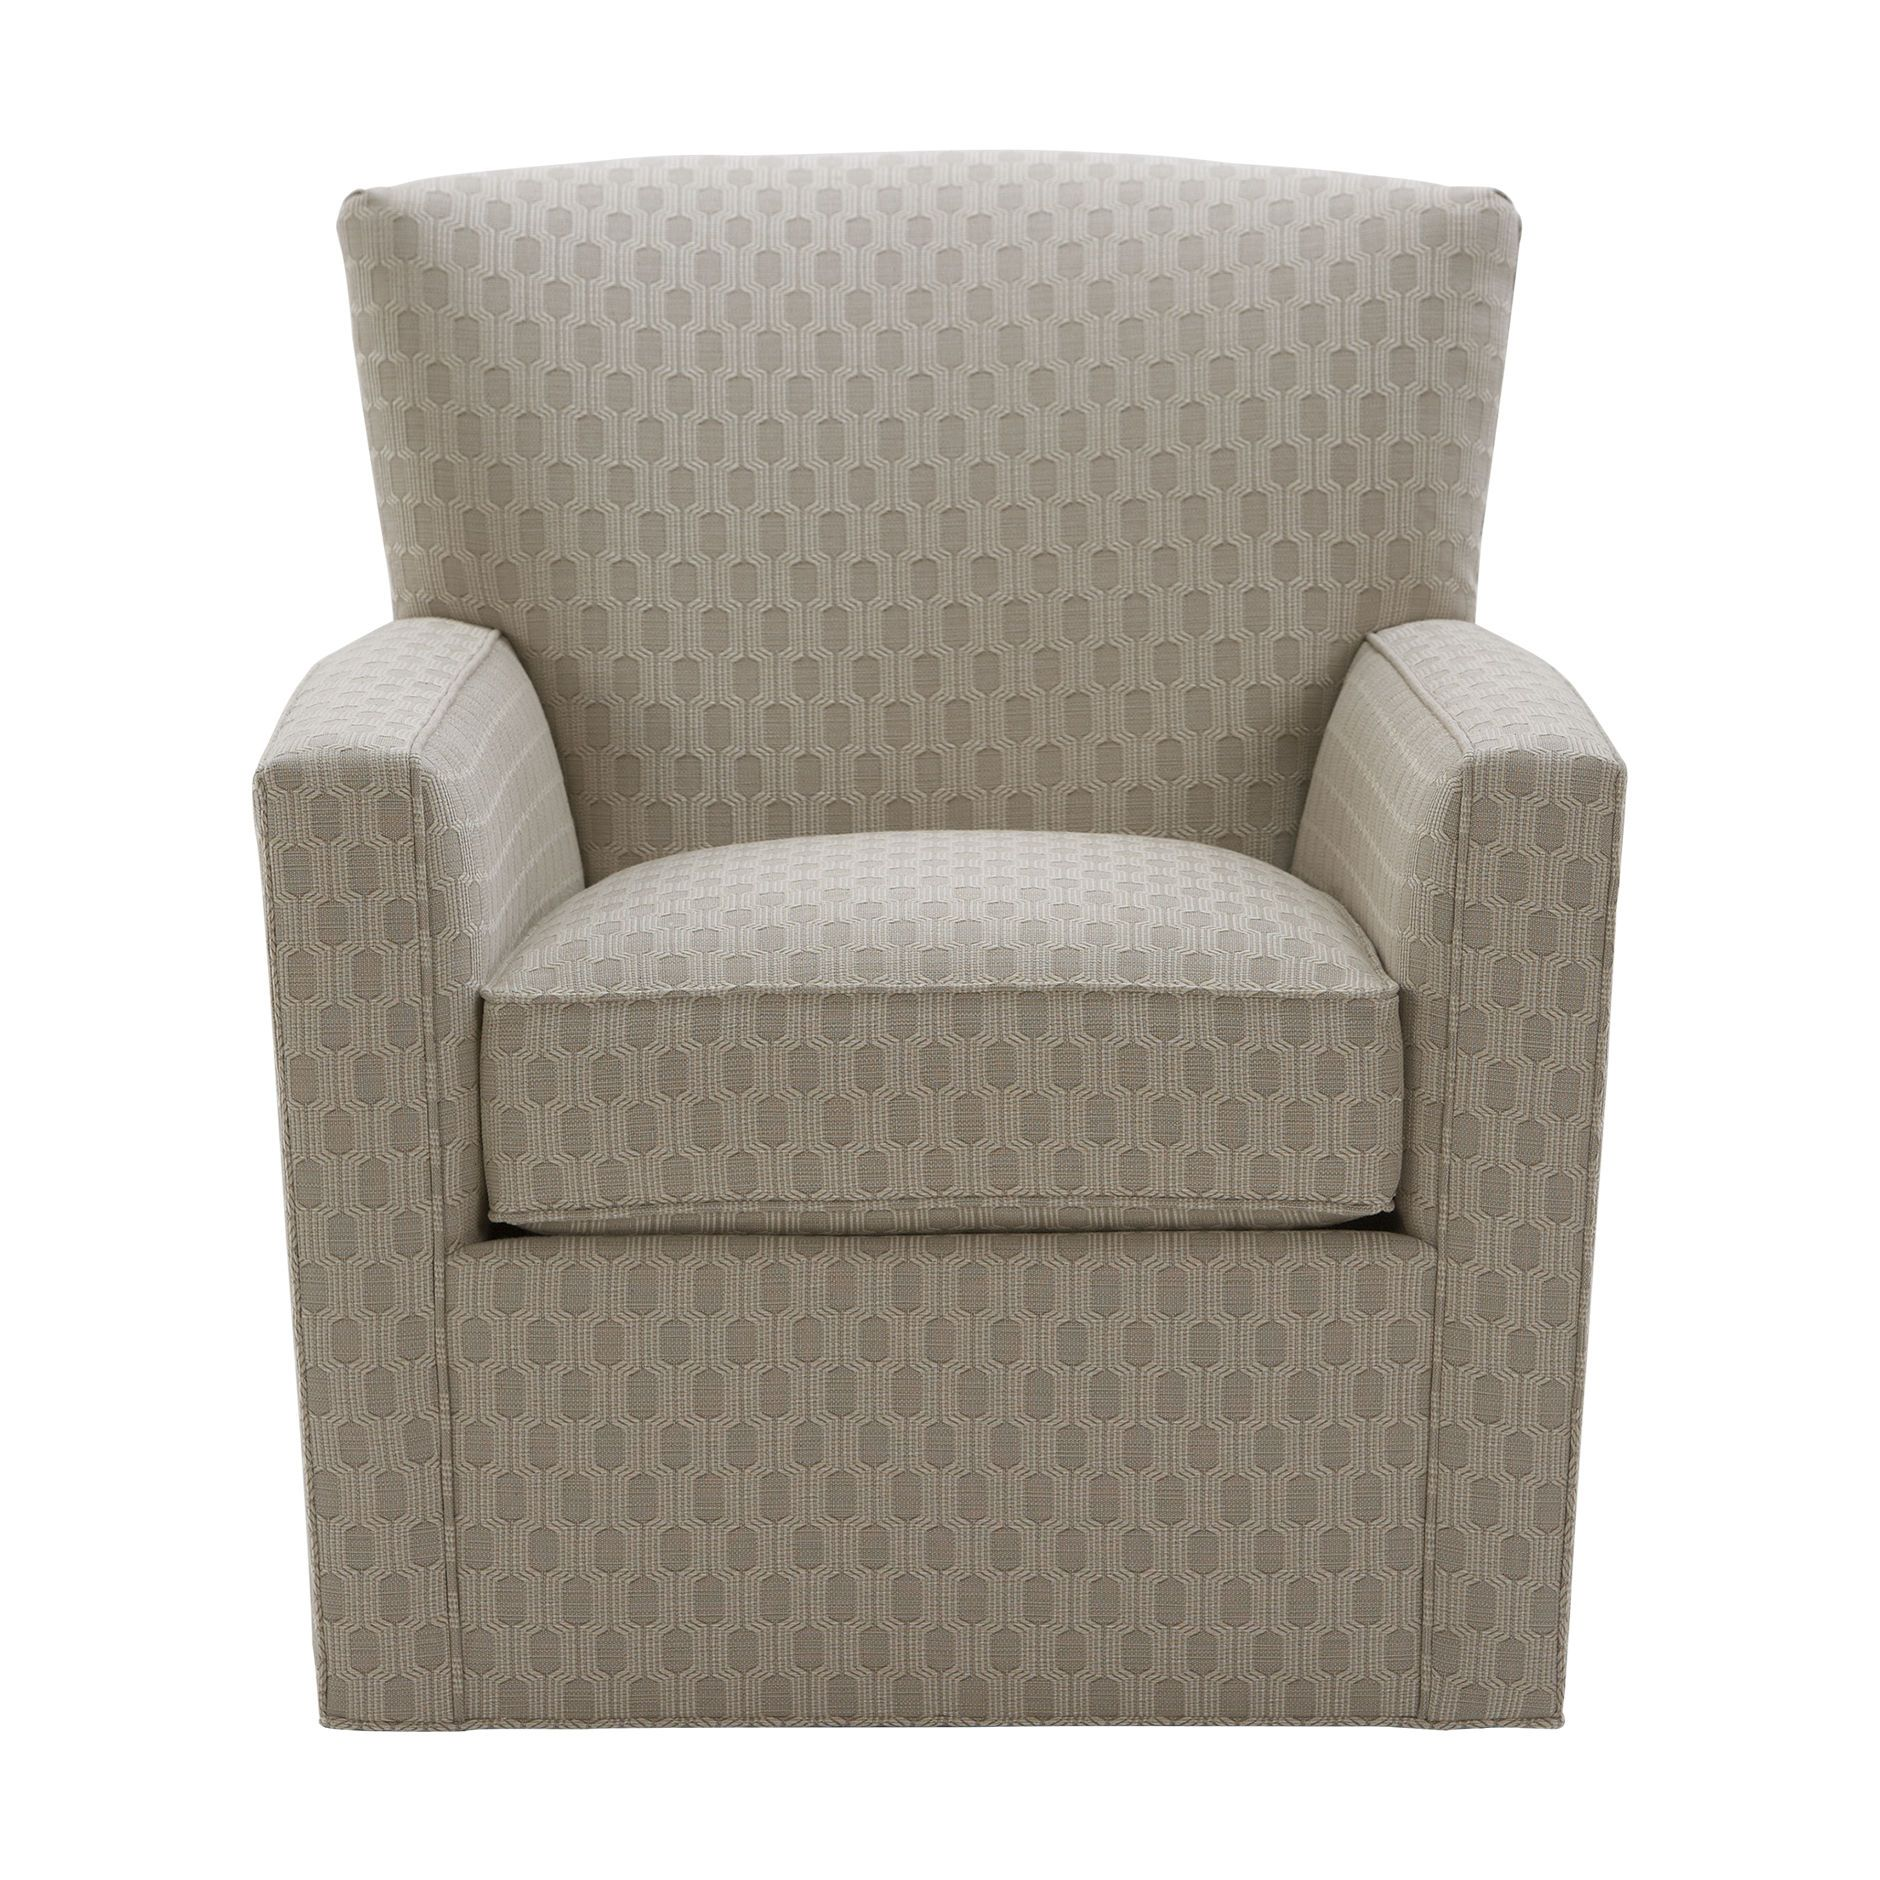 Swivel Chairs For Living Room Turner Swivel Chair Cromwell Oatmeal Ethan Allen Us Heres A